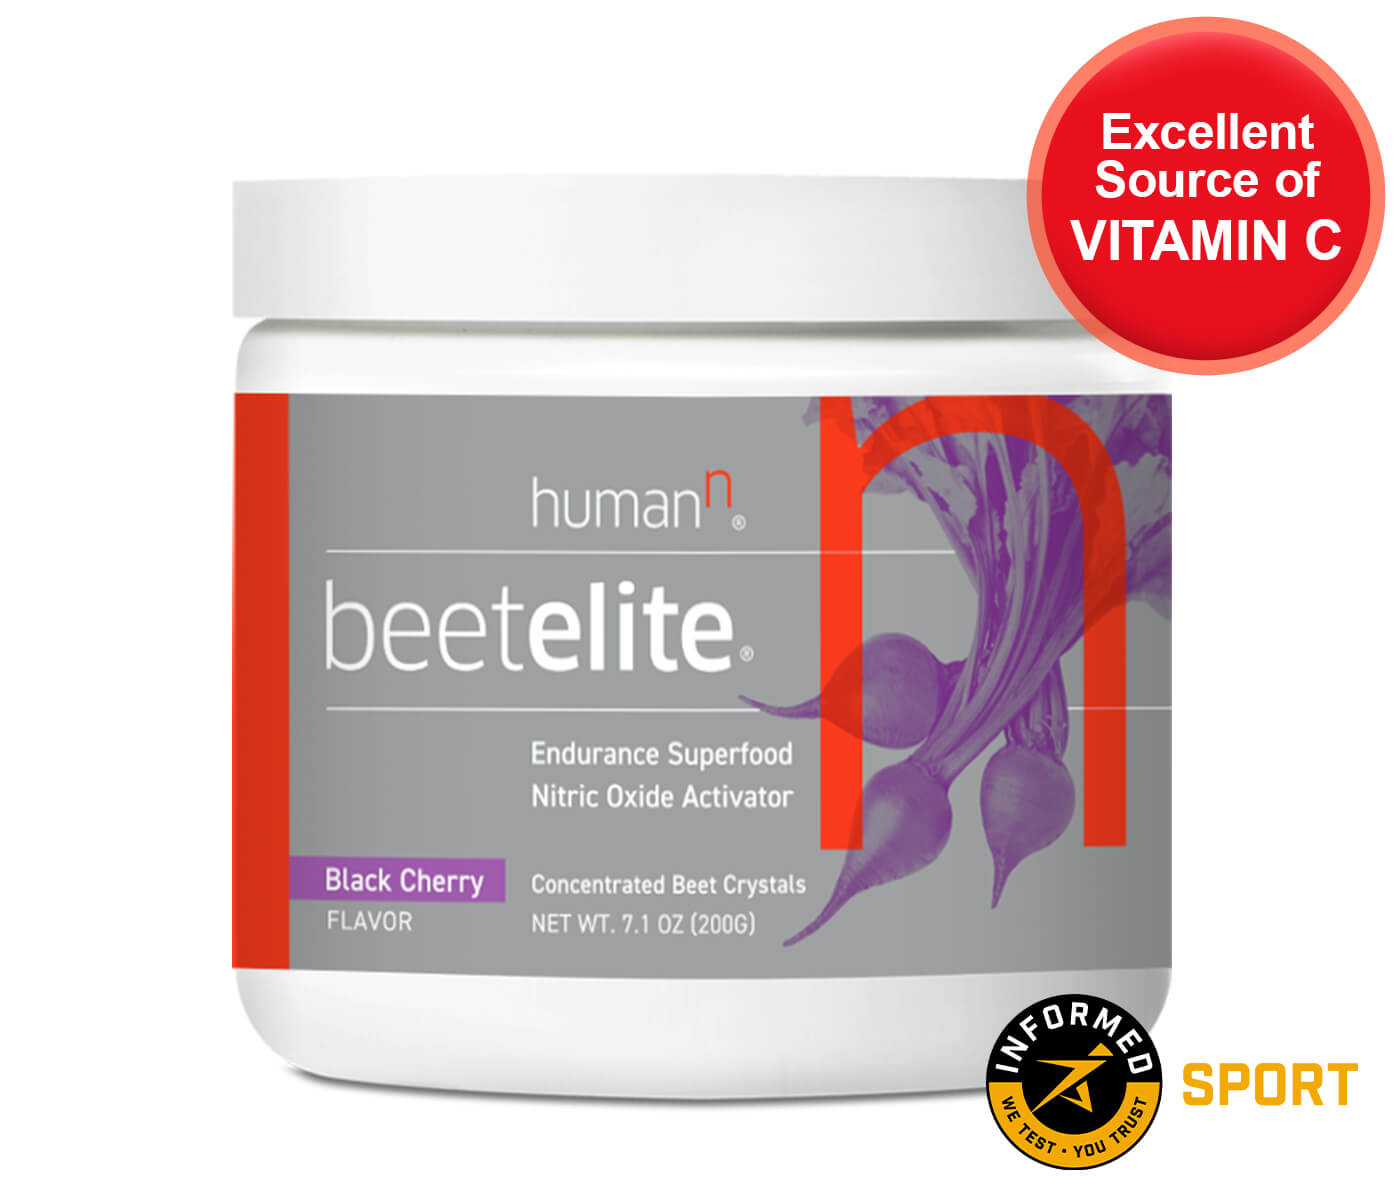 Canister of BeetElite, showing excellent Vitamin C source and Informed SPORT badge